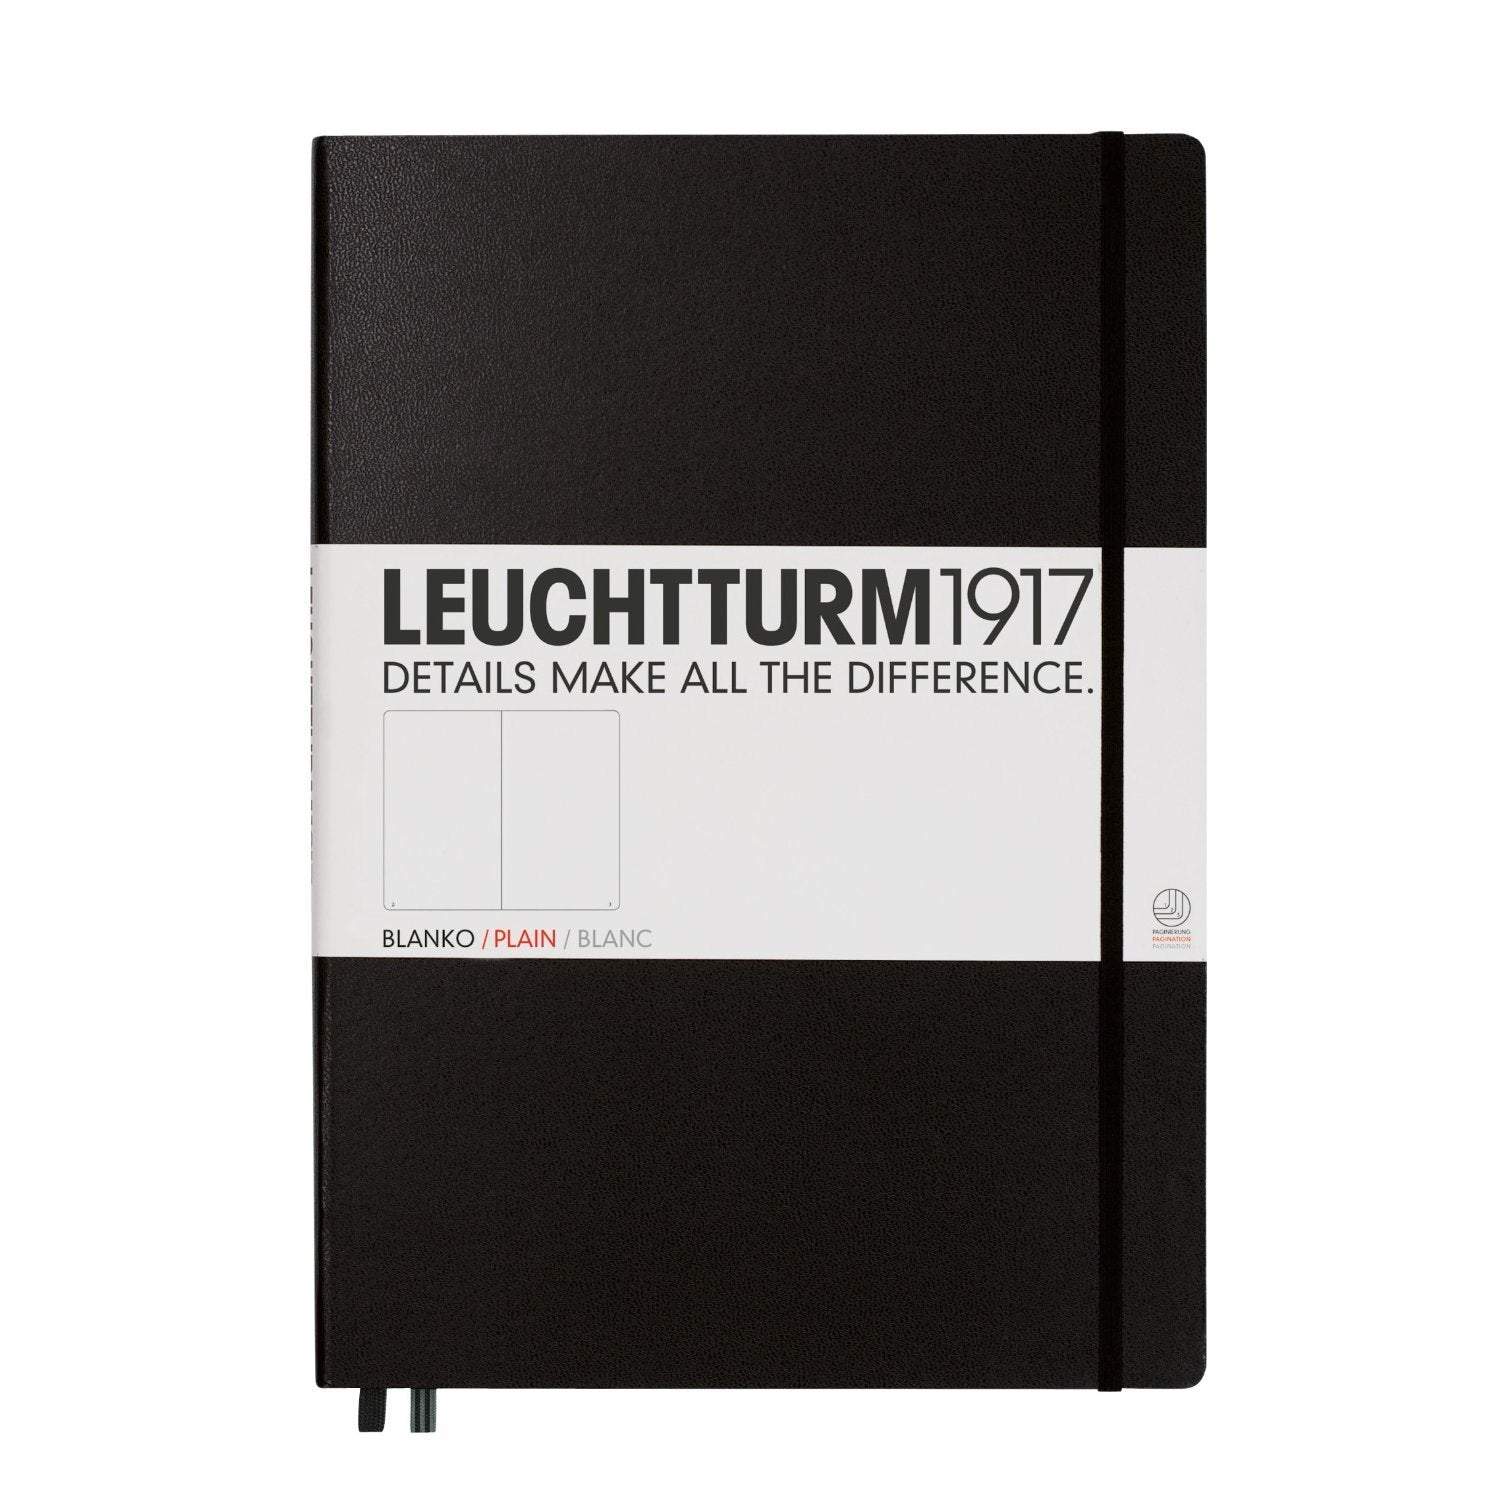 Leuchtturm1917 Black Hard Cover Master Notebook, Plain, A4